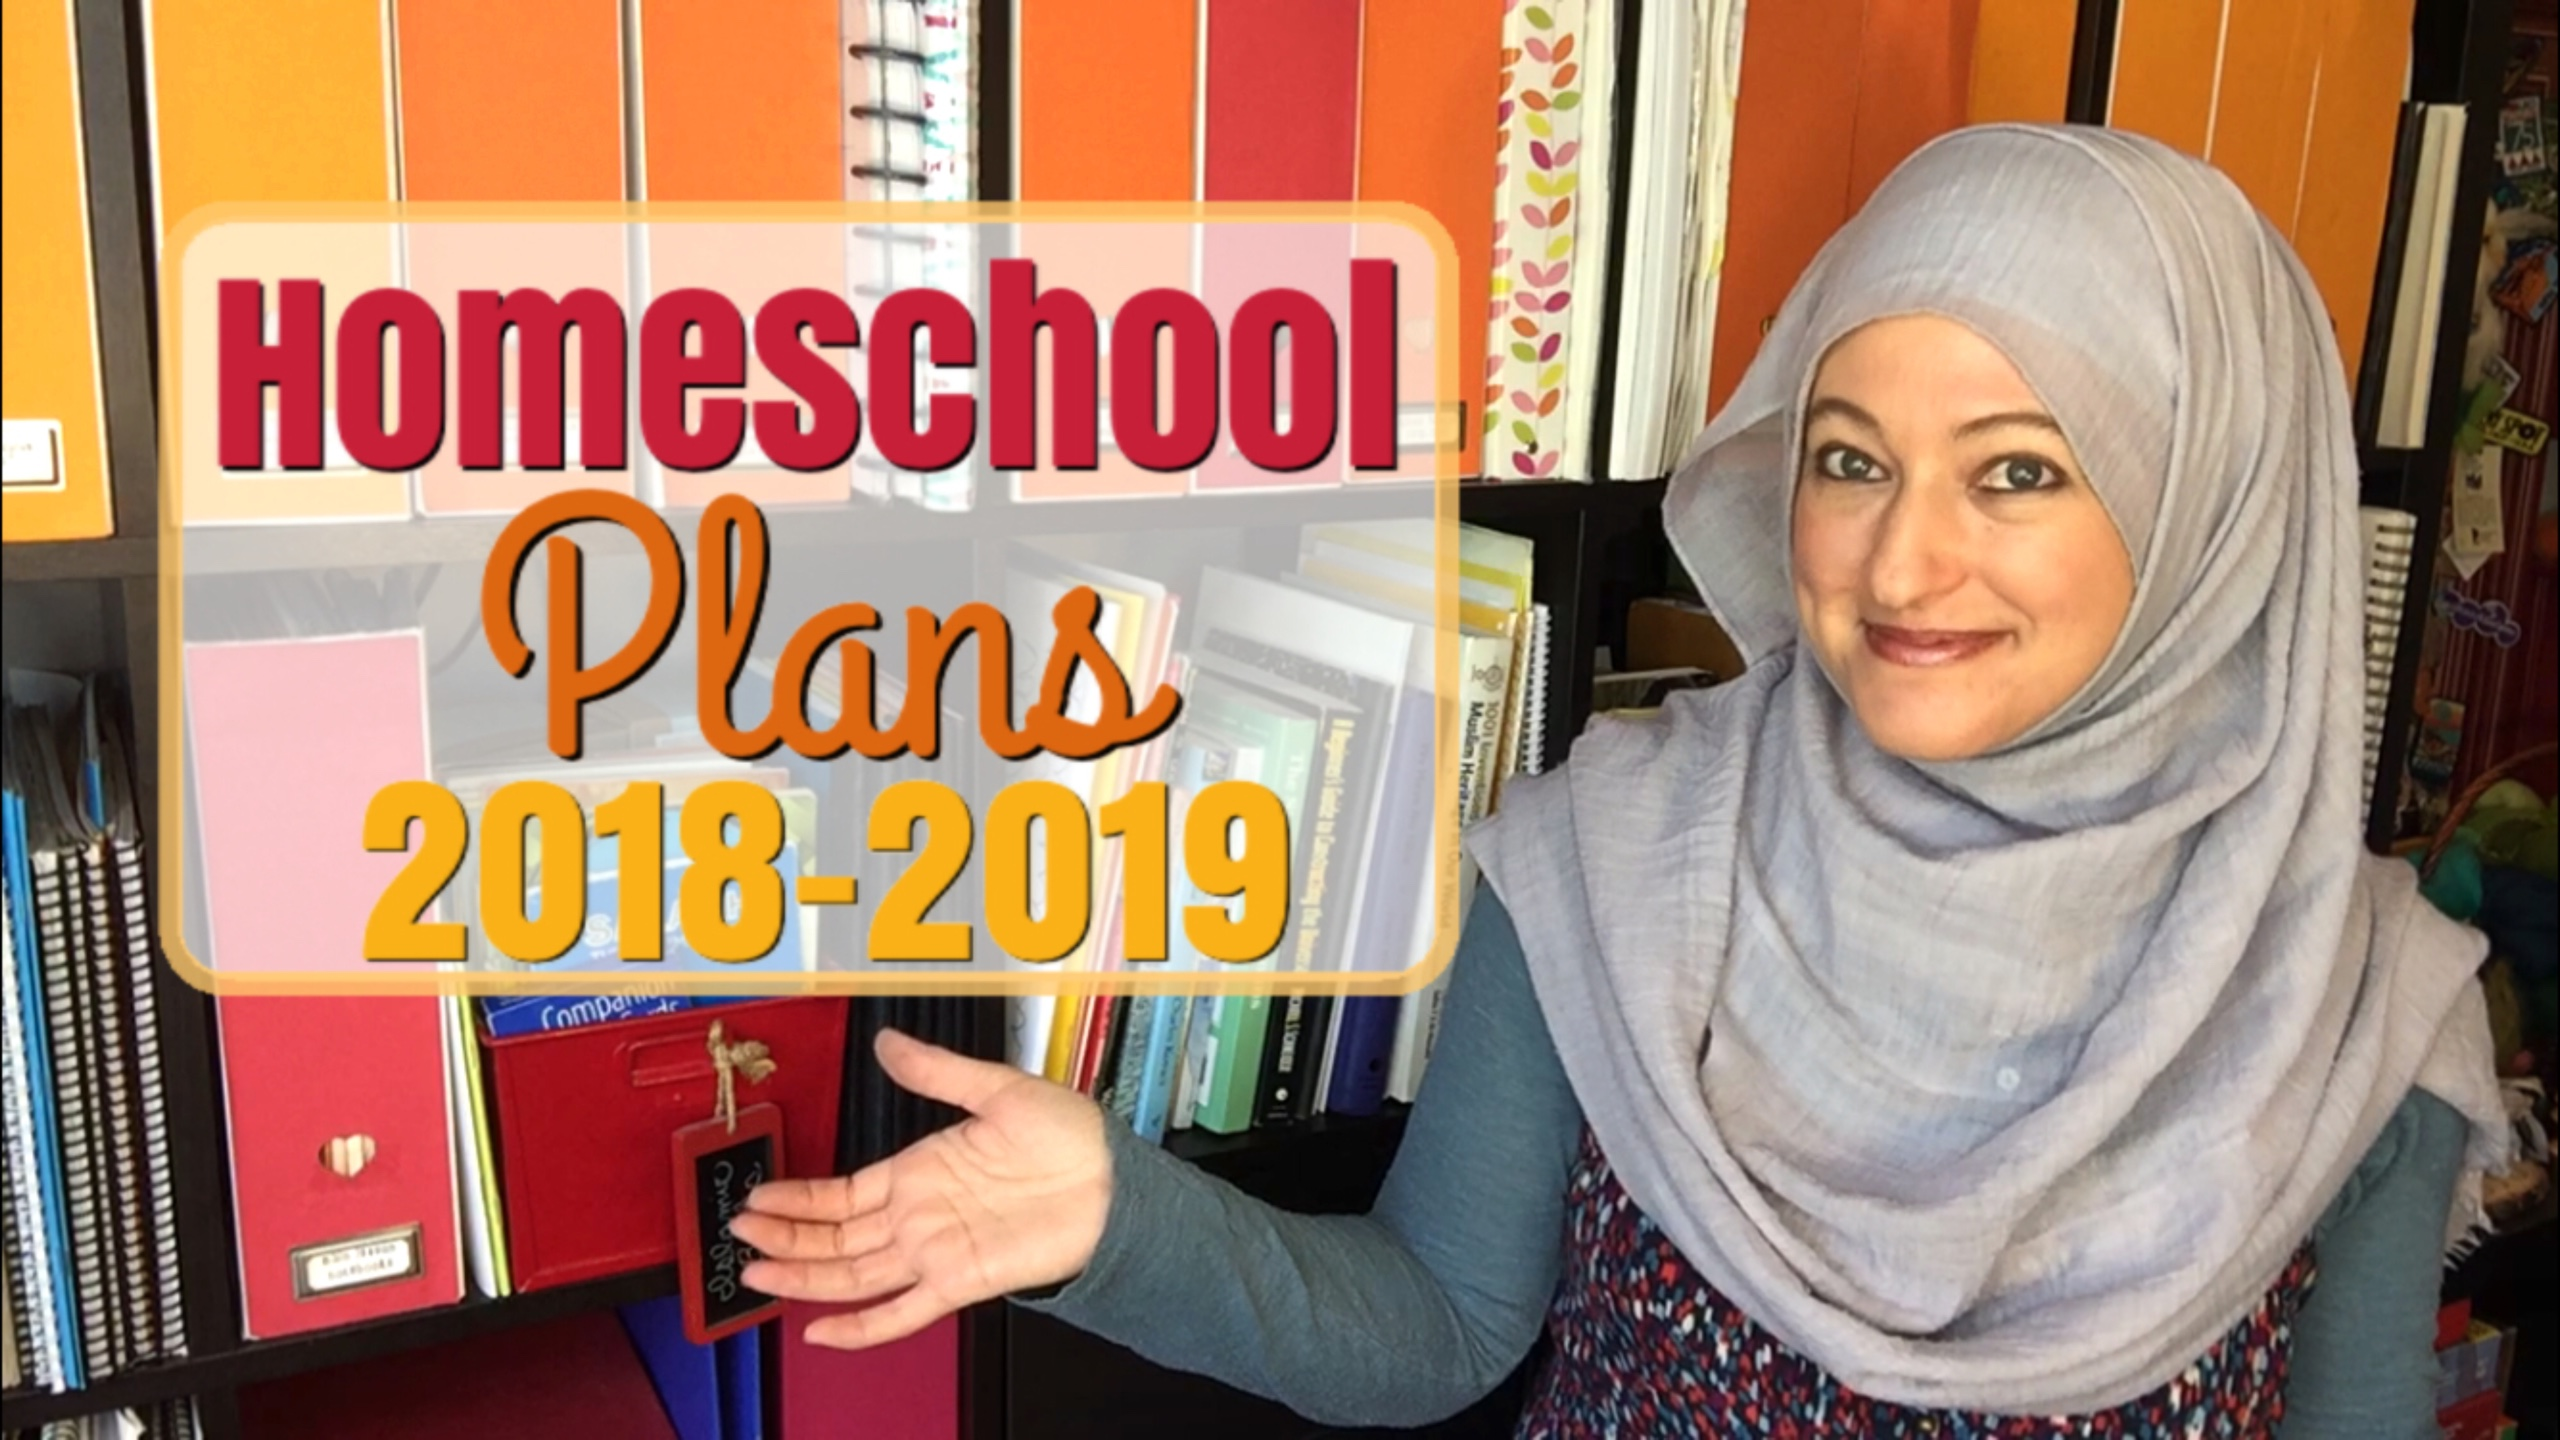 HOMESCHOOL PLANS FOR 2018-2019